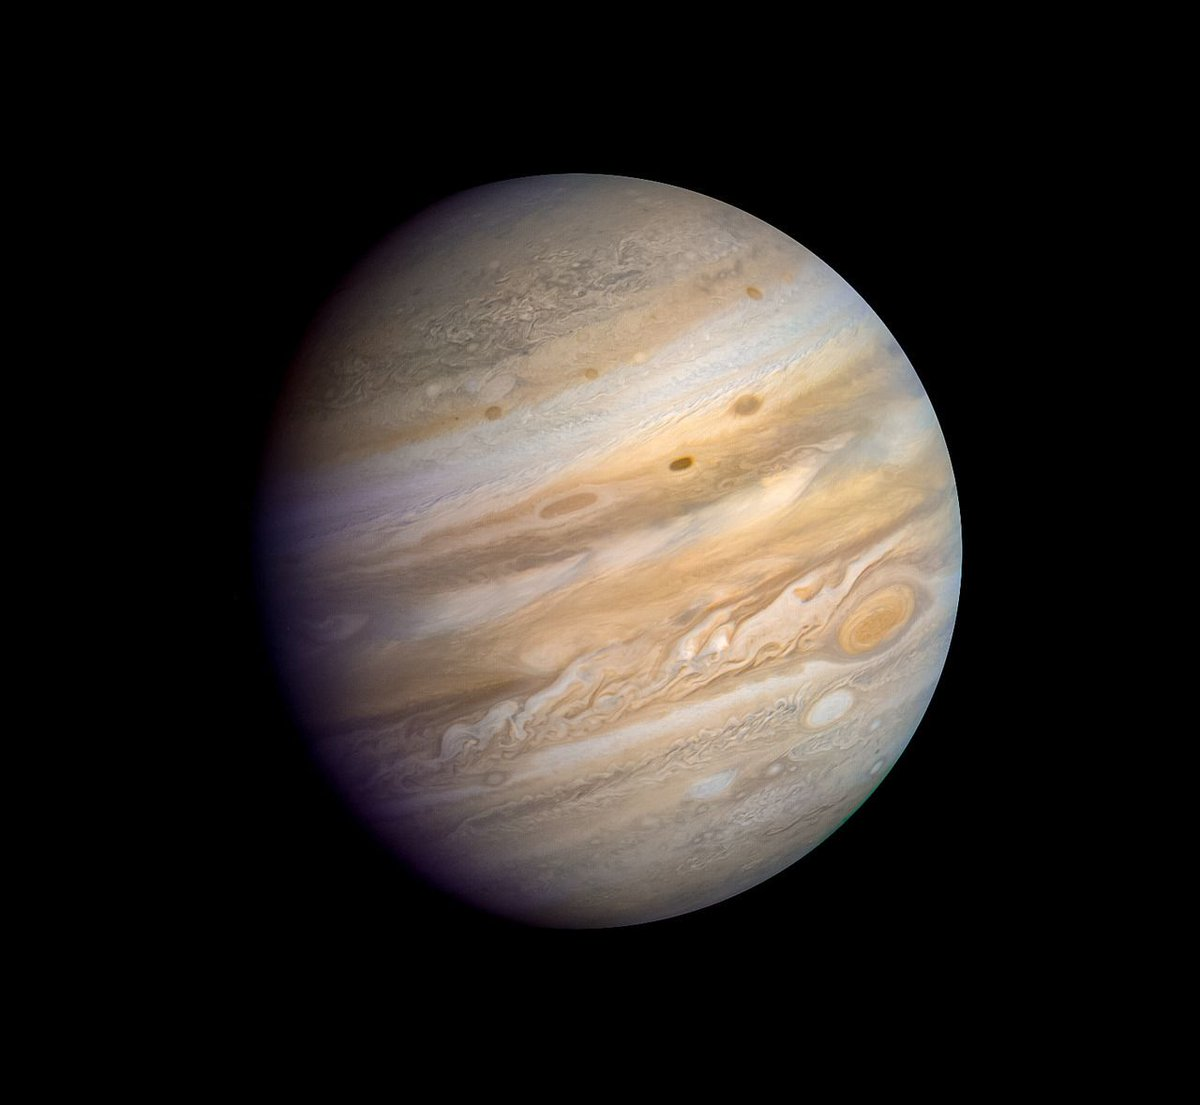 #Space: #Jupiter - June 21 1979, as seen by #Voyager2 https://t.co/IqGnq0FVmp by @kevinmgill